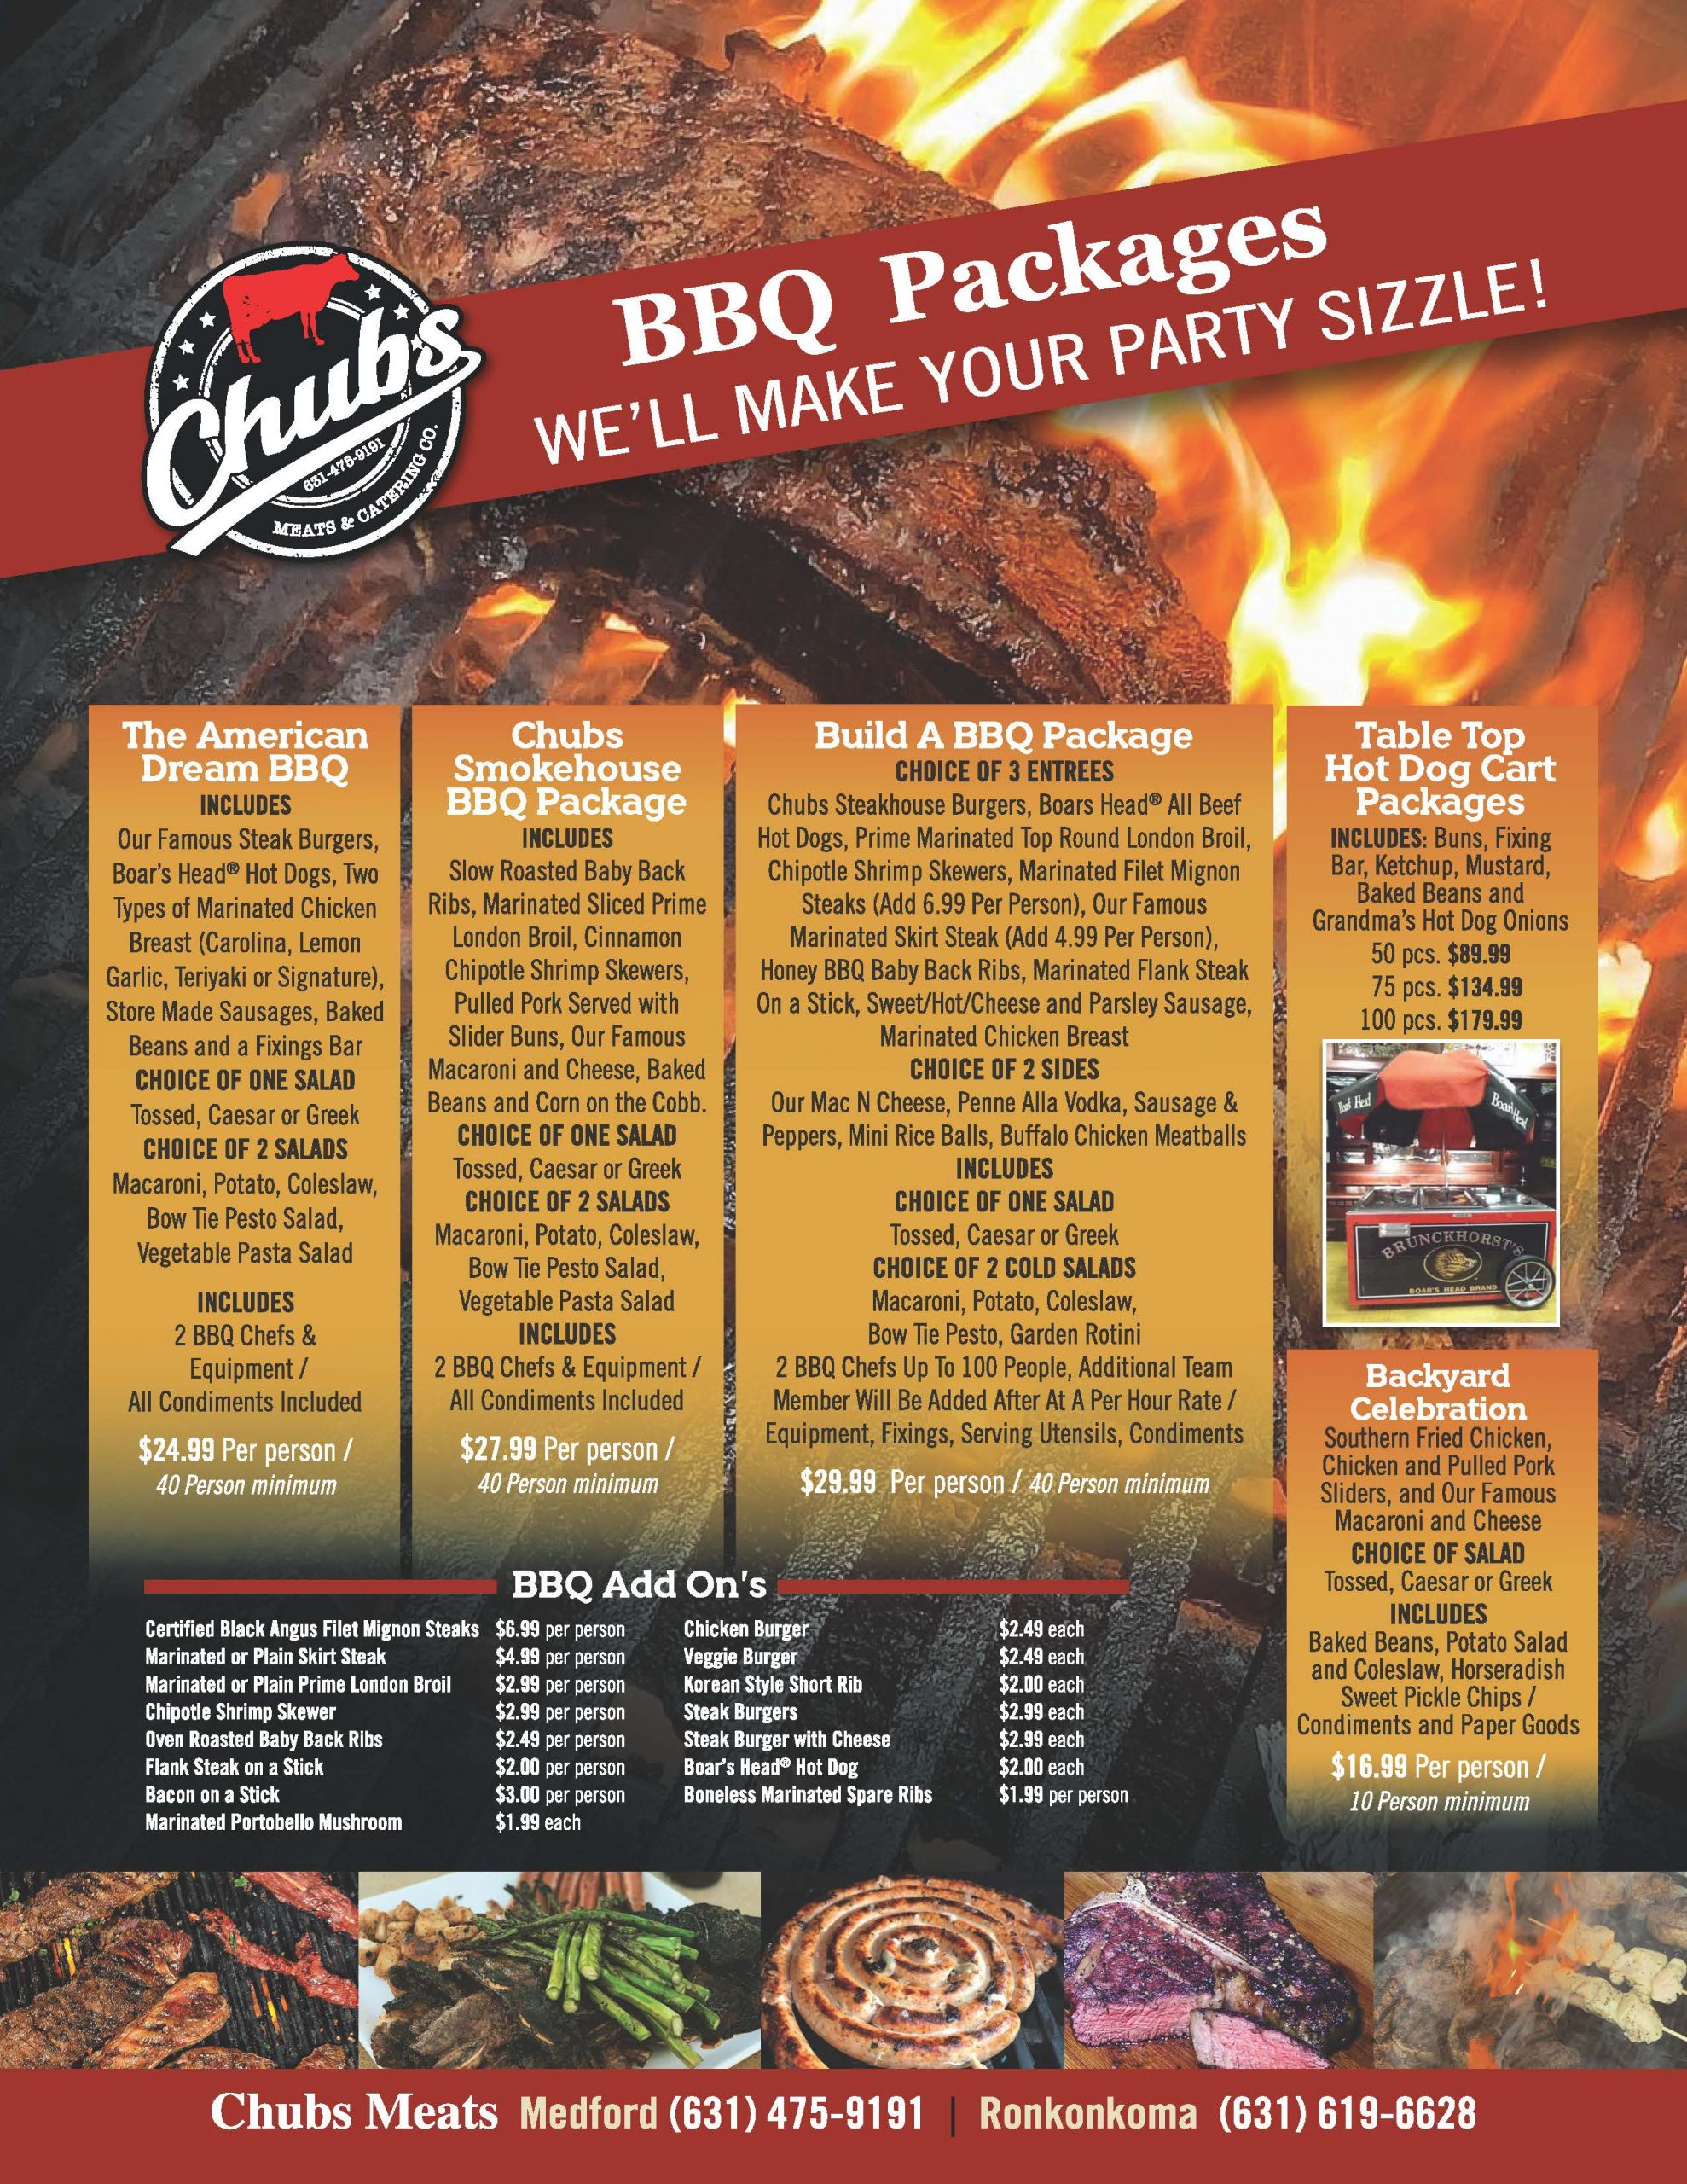 Chubs BBQ Packages